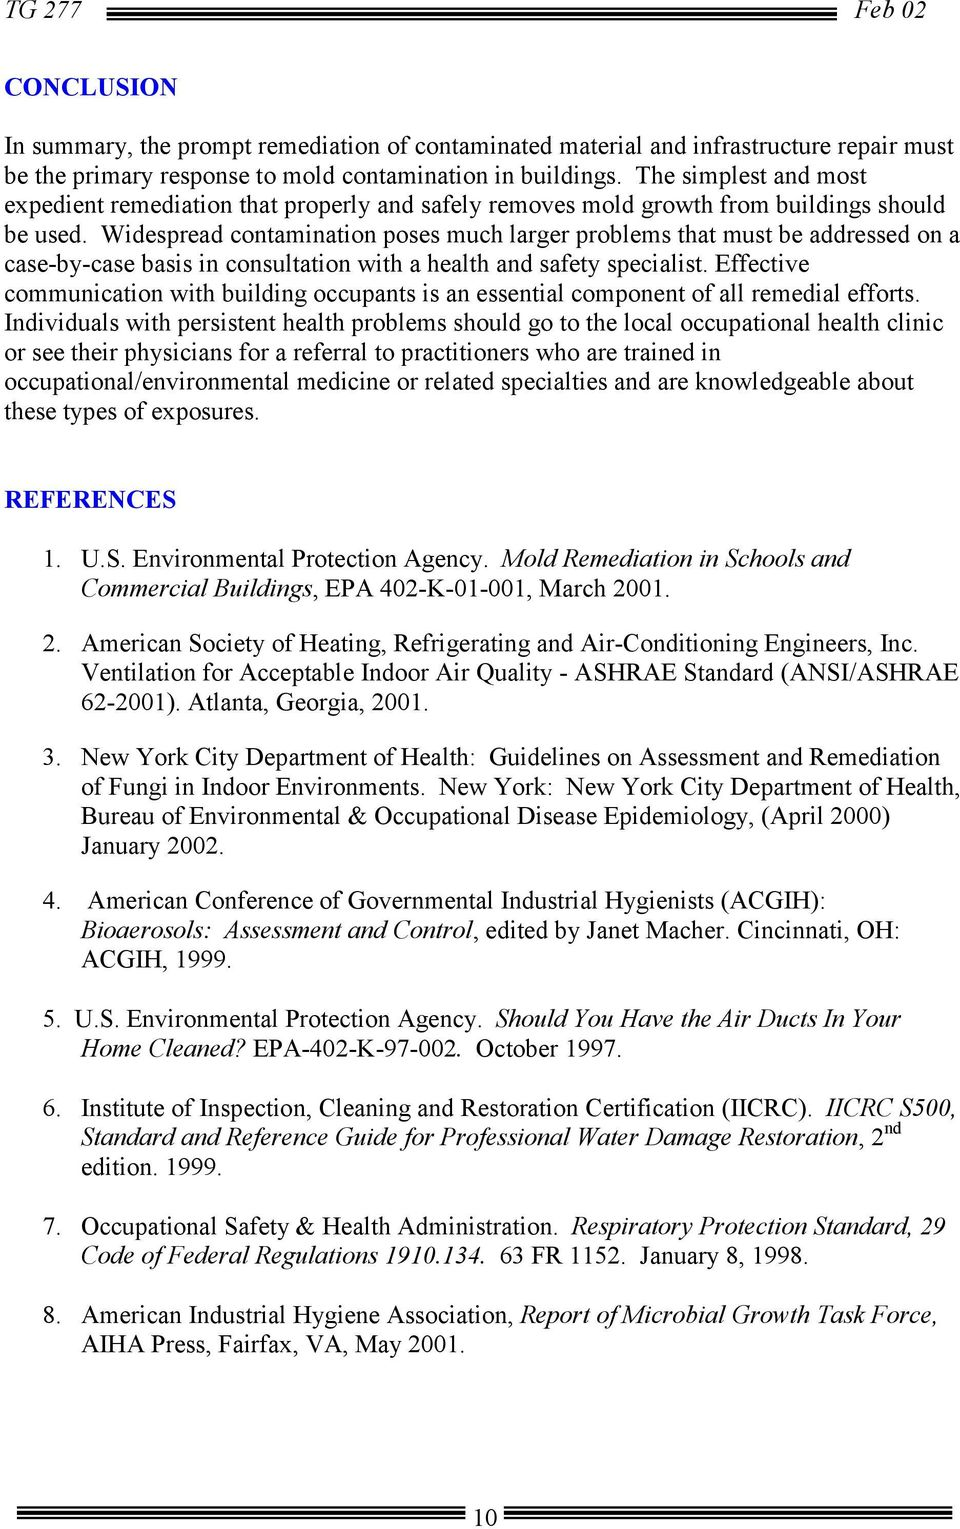 Army Facilities Management Information Document on Mold